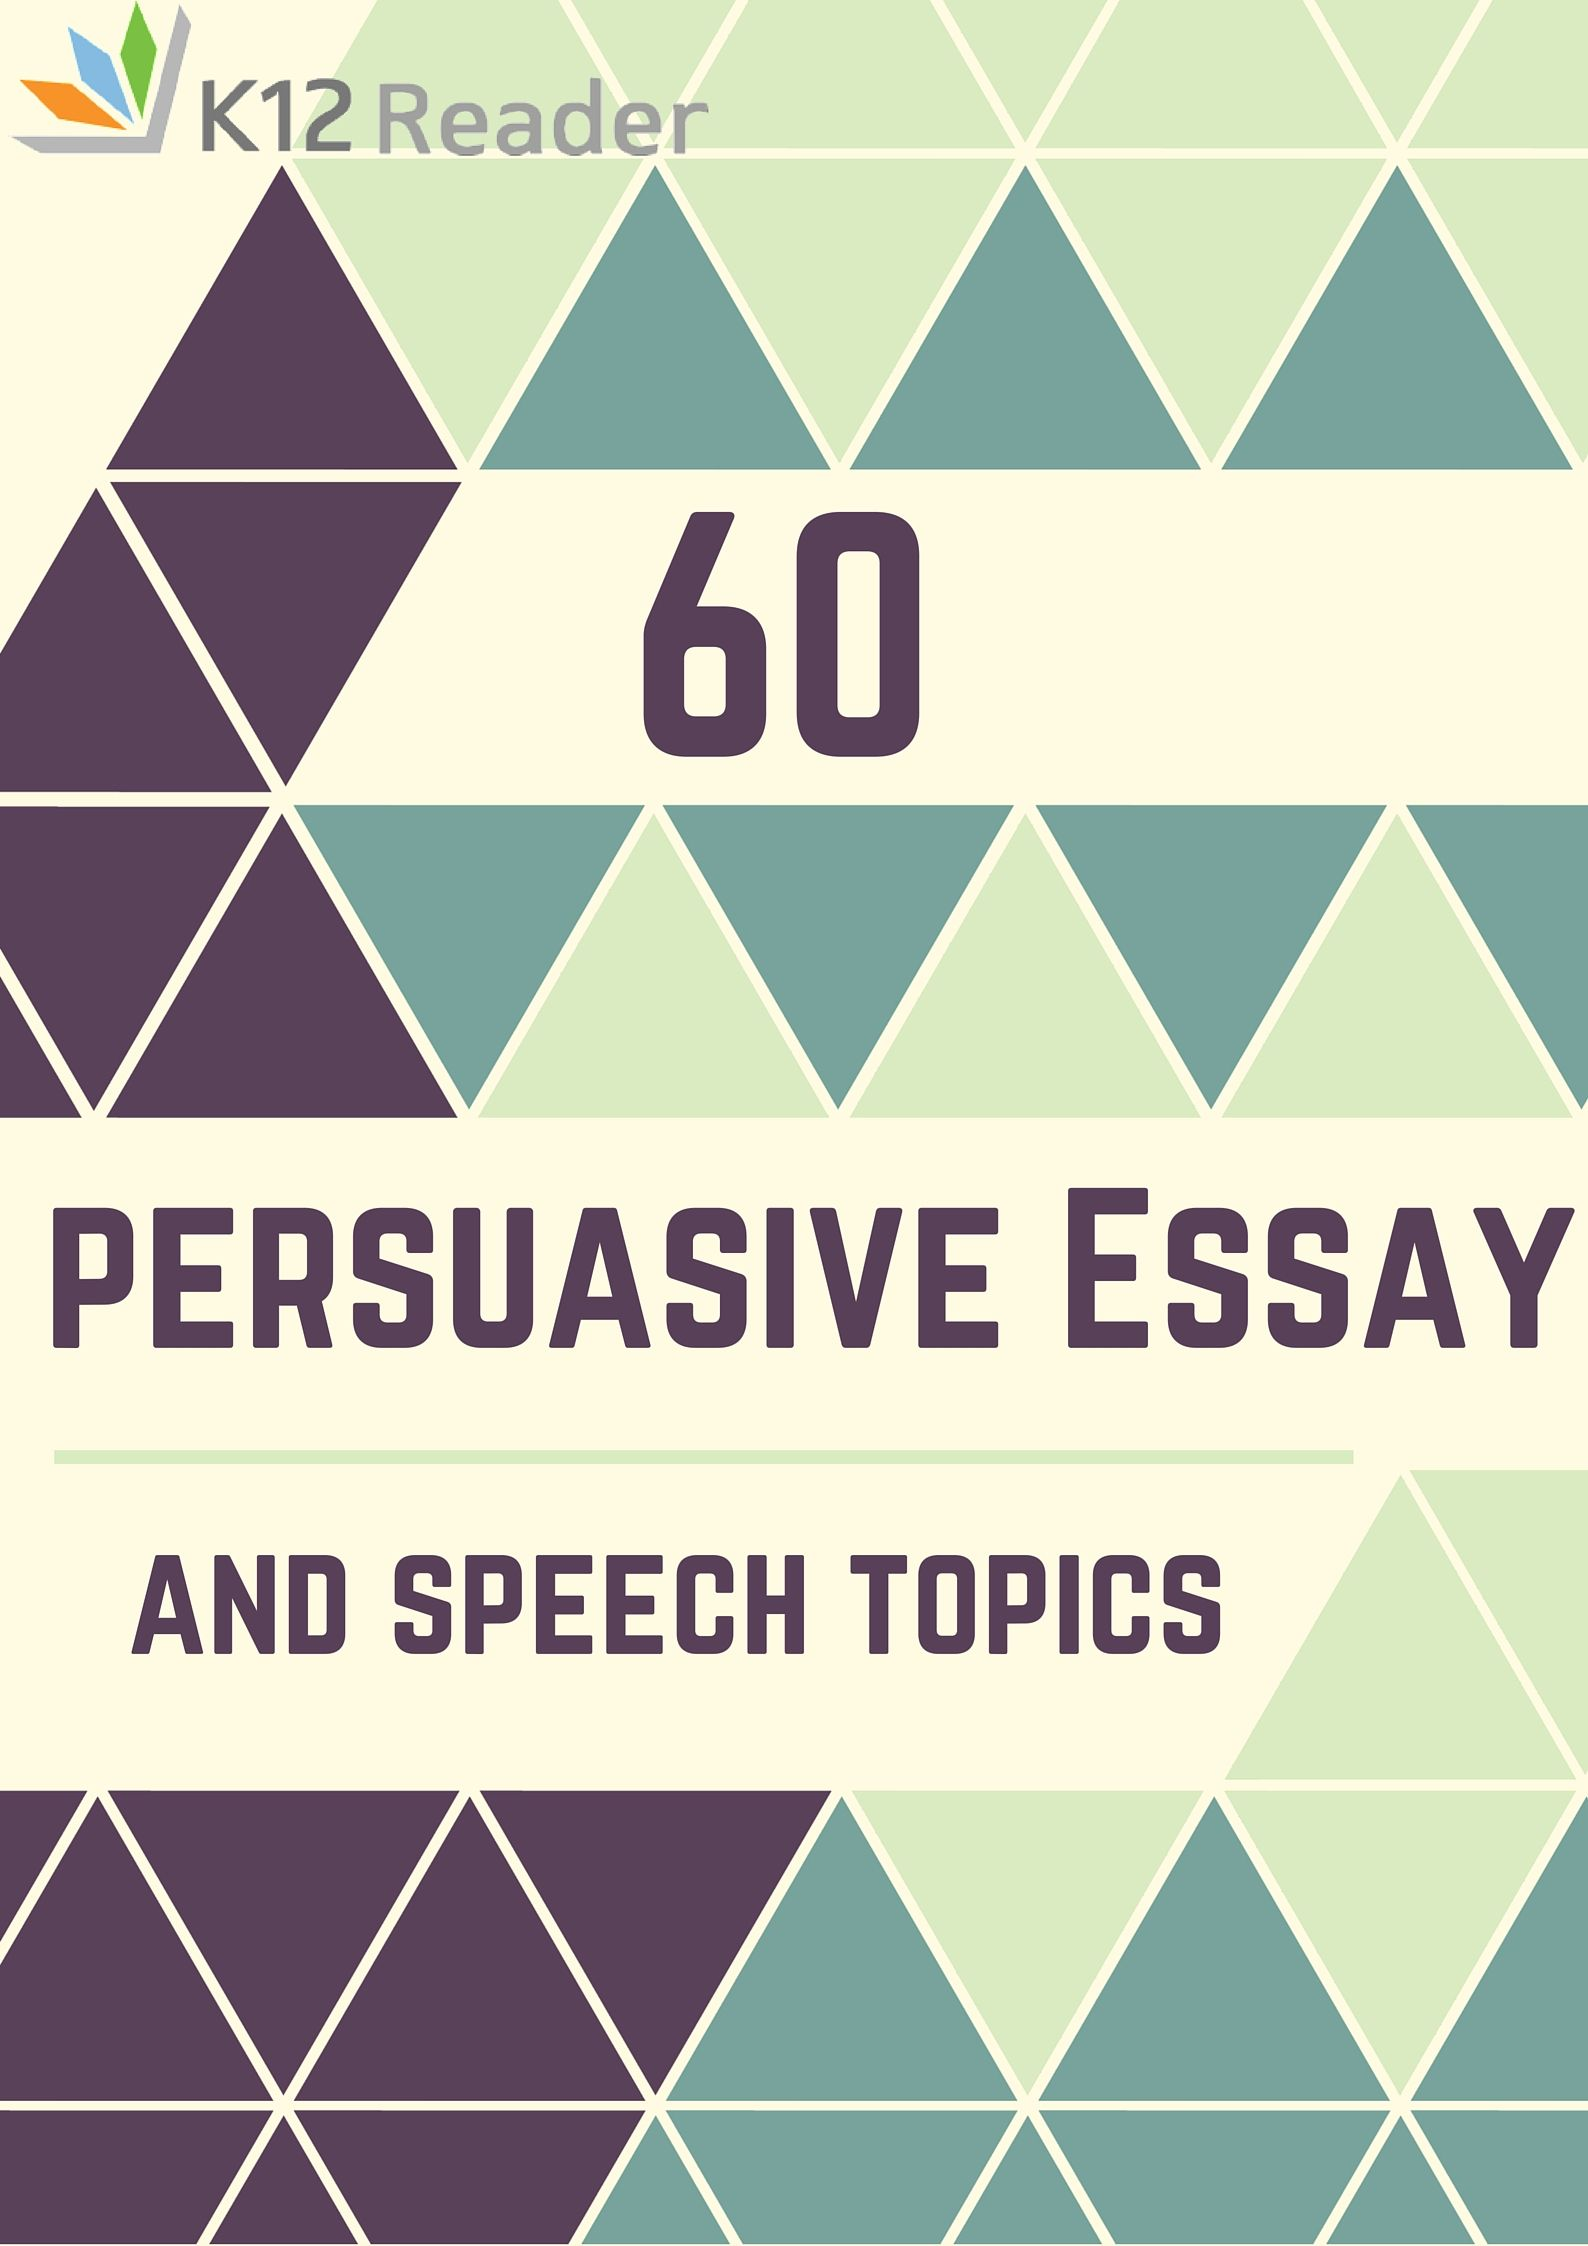 Argumentative research essay topics for college students